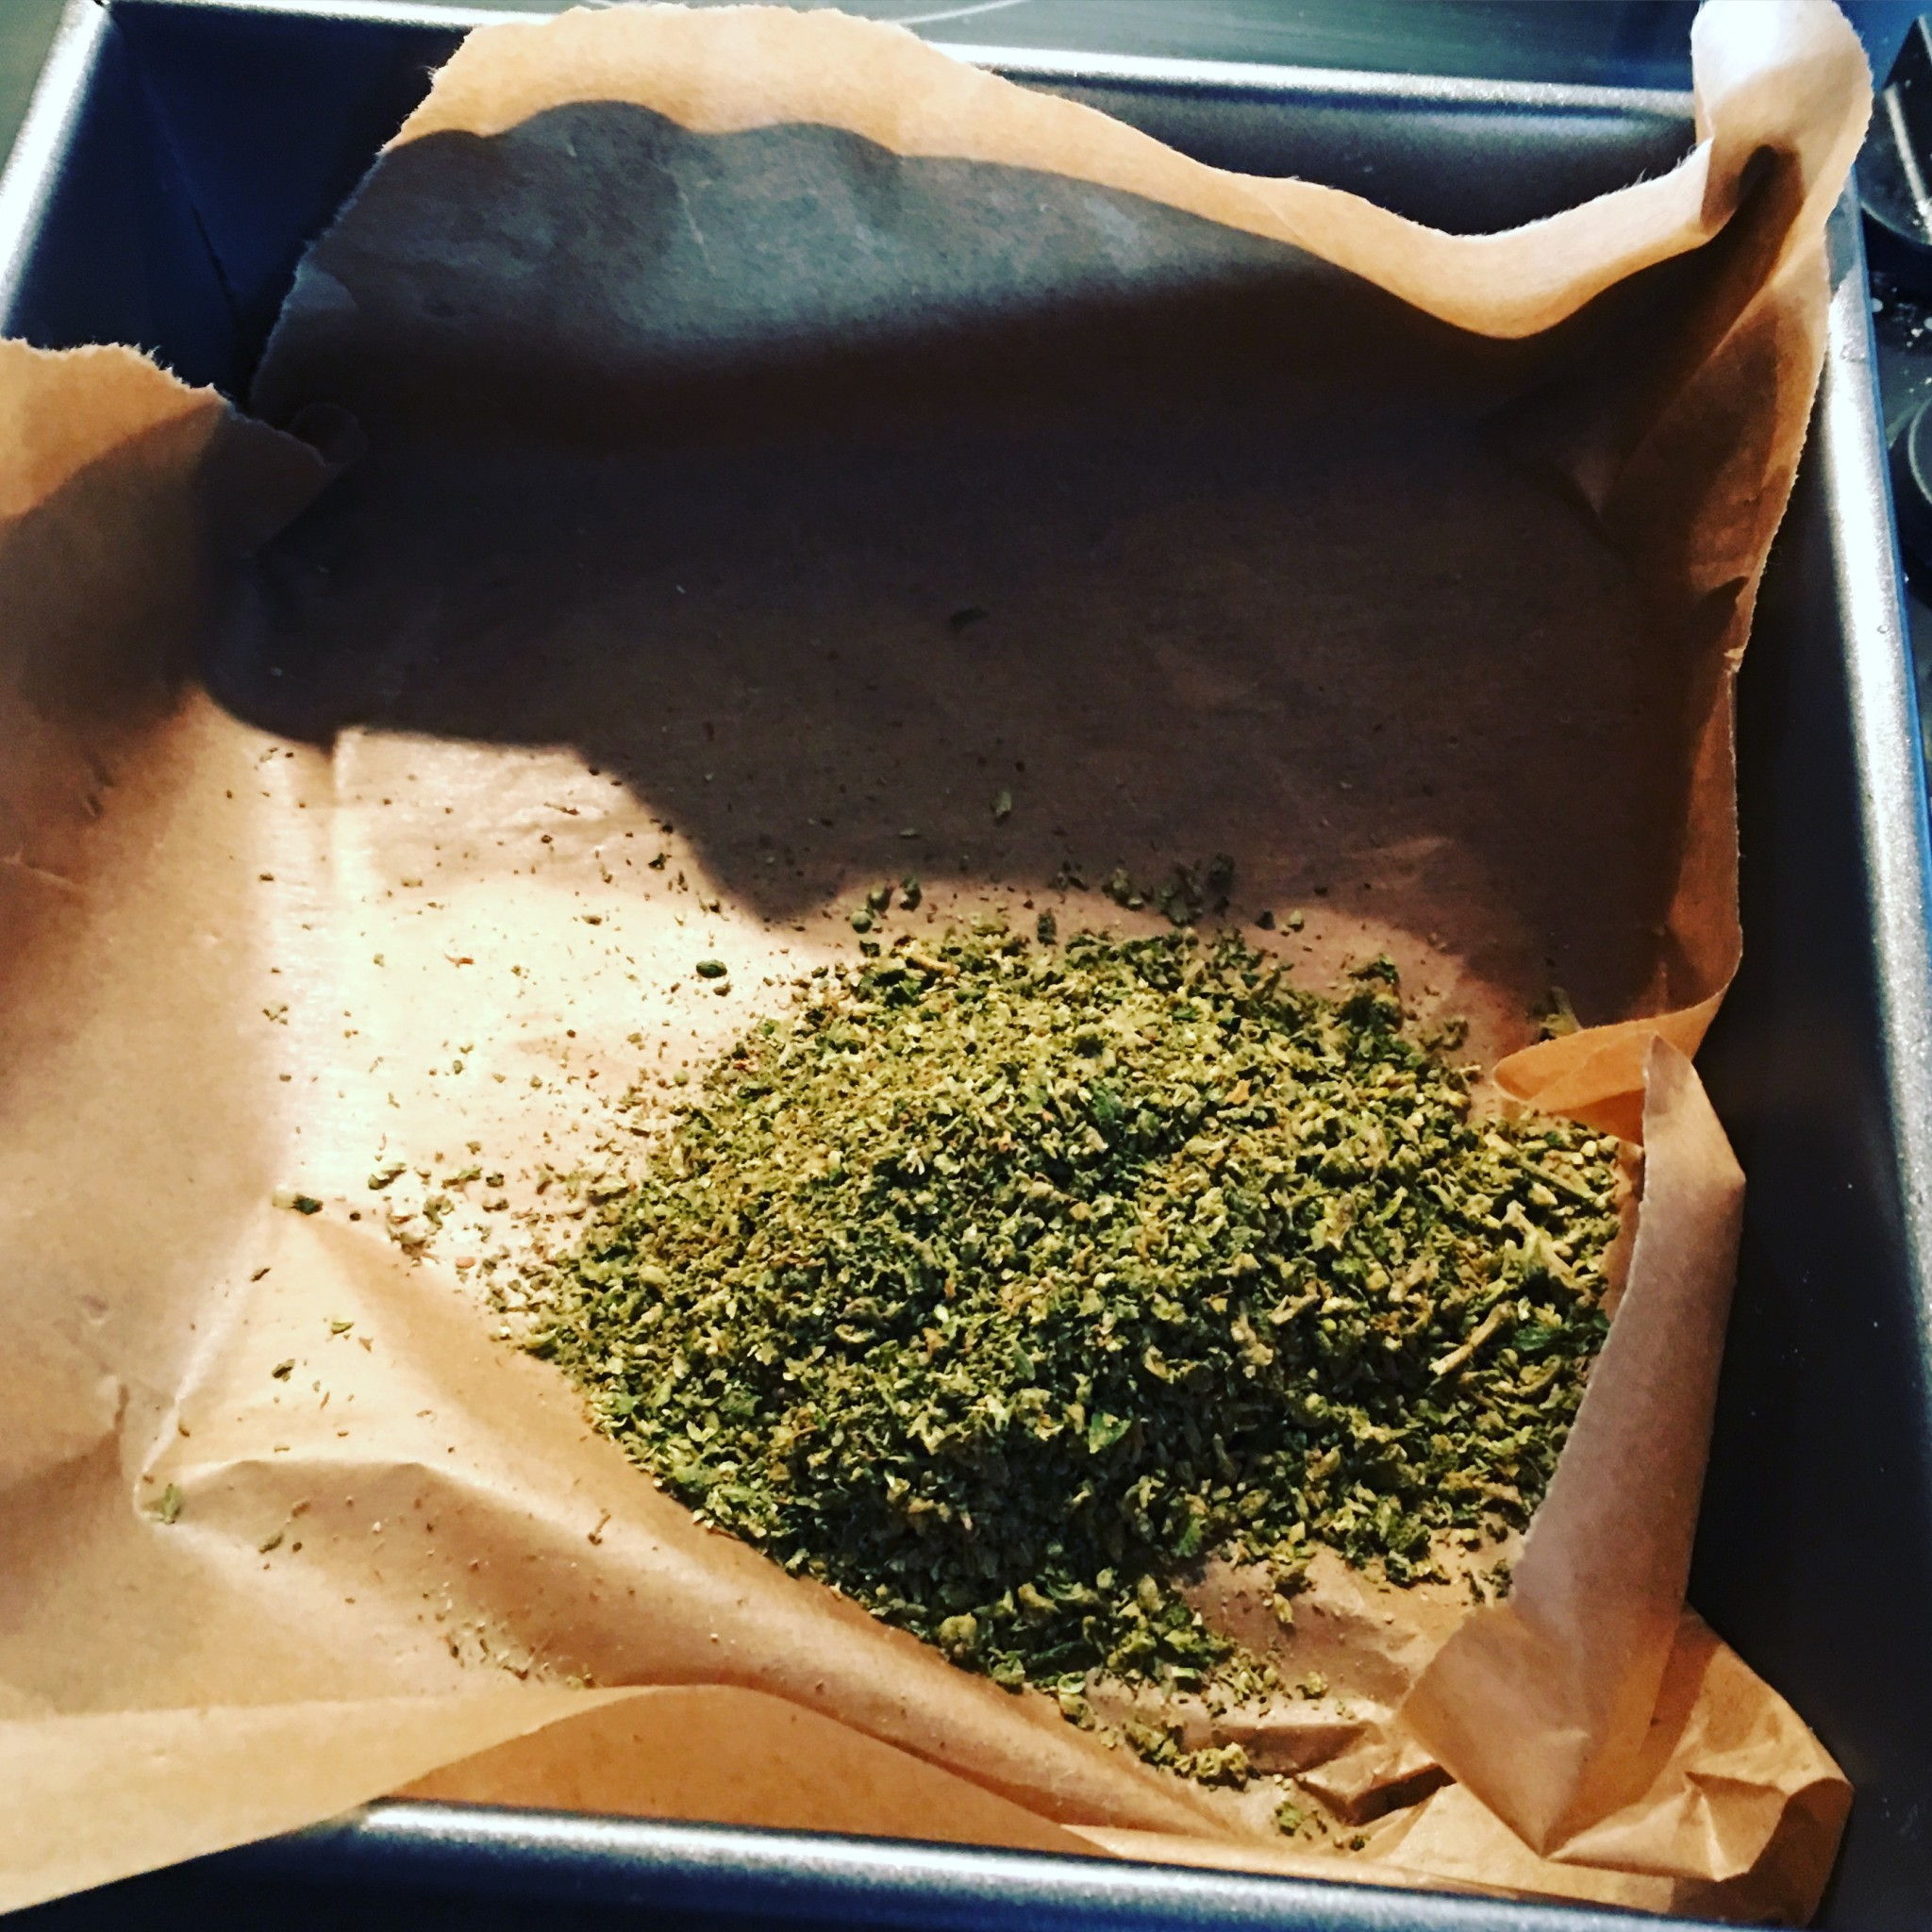 cannabis butter, We made cannabis butter – this is how we did it